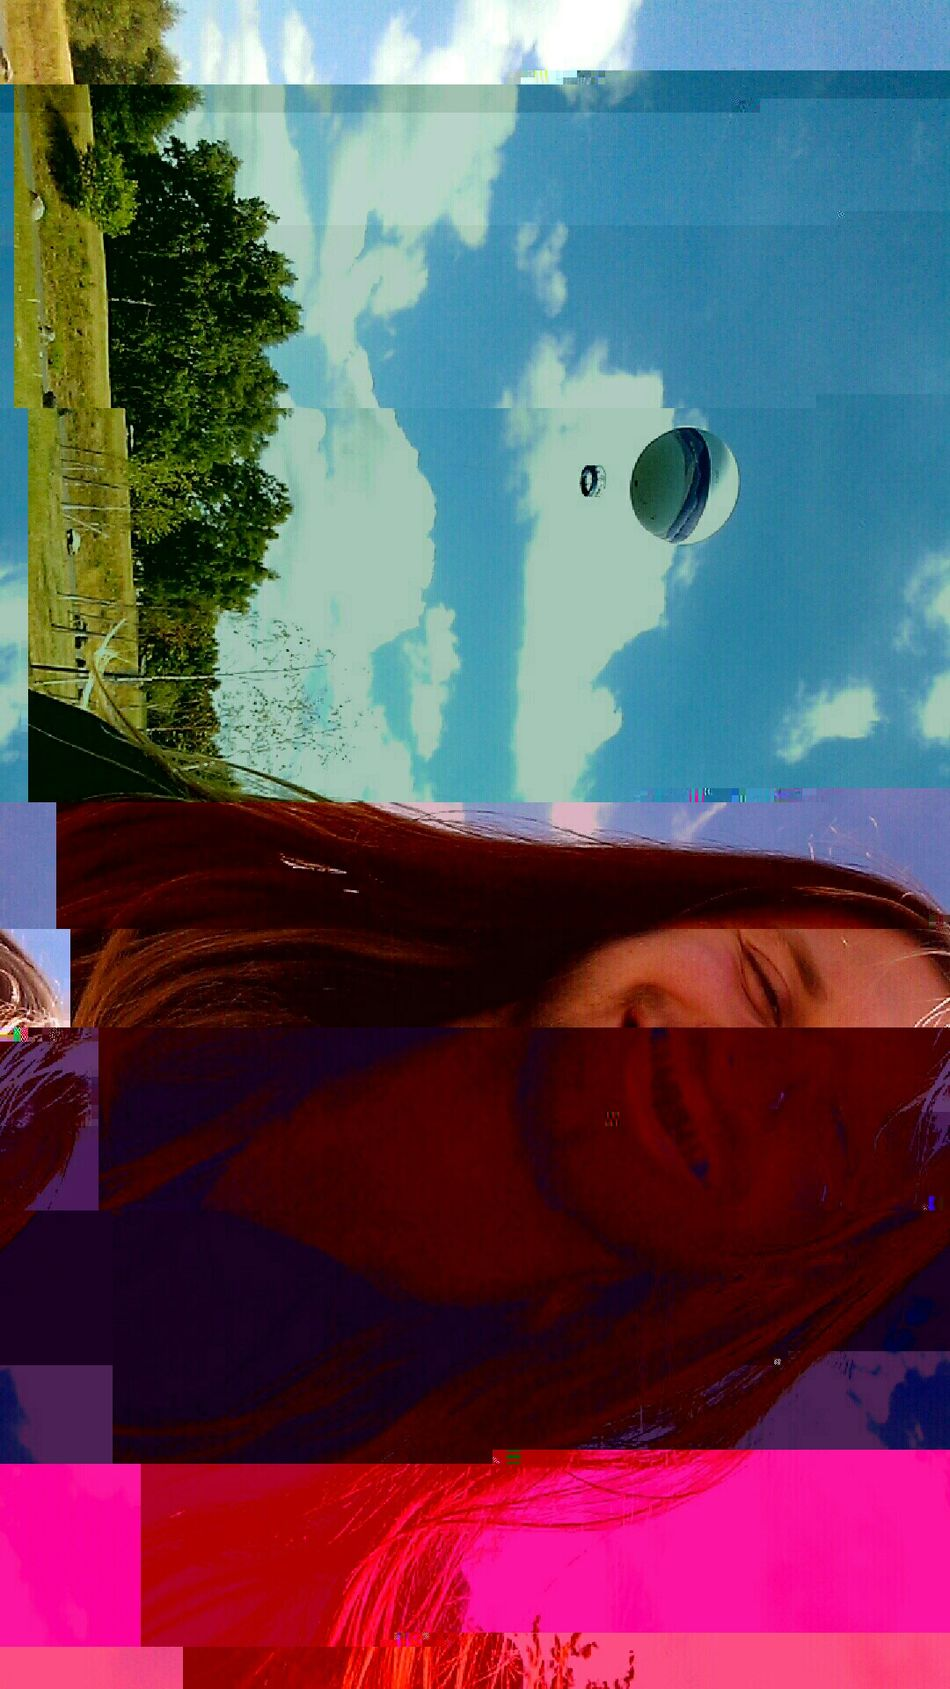 Beauty Redefined Clouds And Sky Enjoying Life DavidLynch Earthporr Check This Out Cheese! Psychedelic Surreal Insanity Beauty wears many faces.